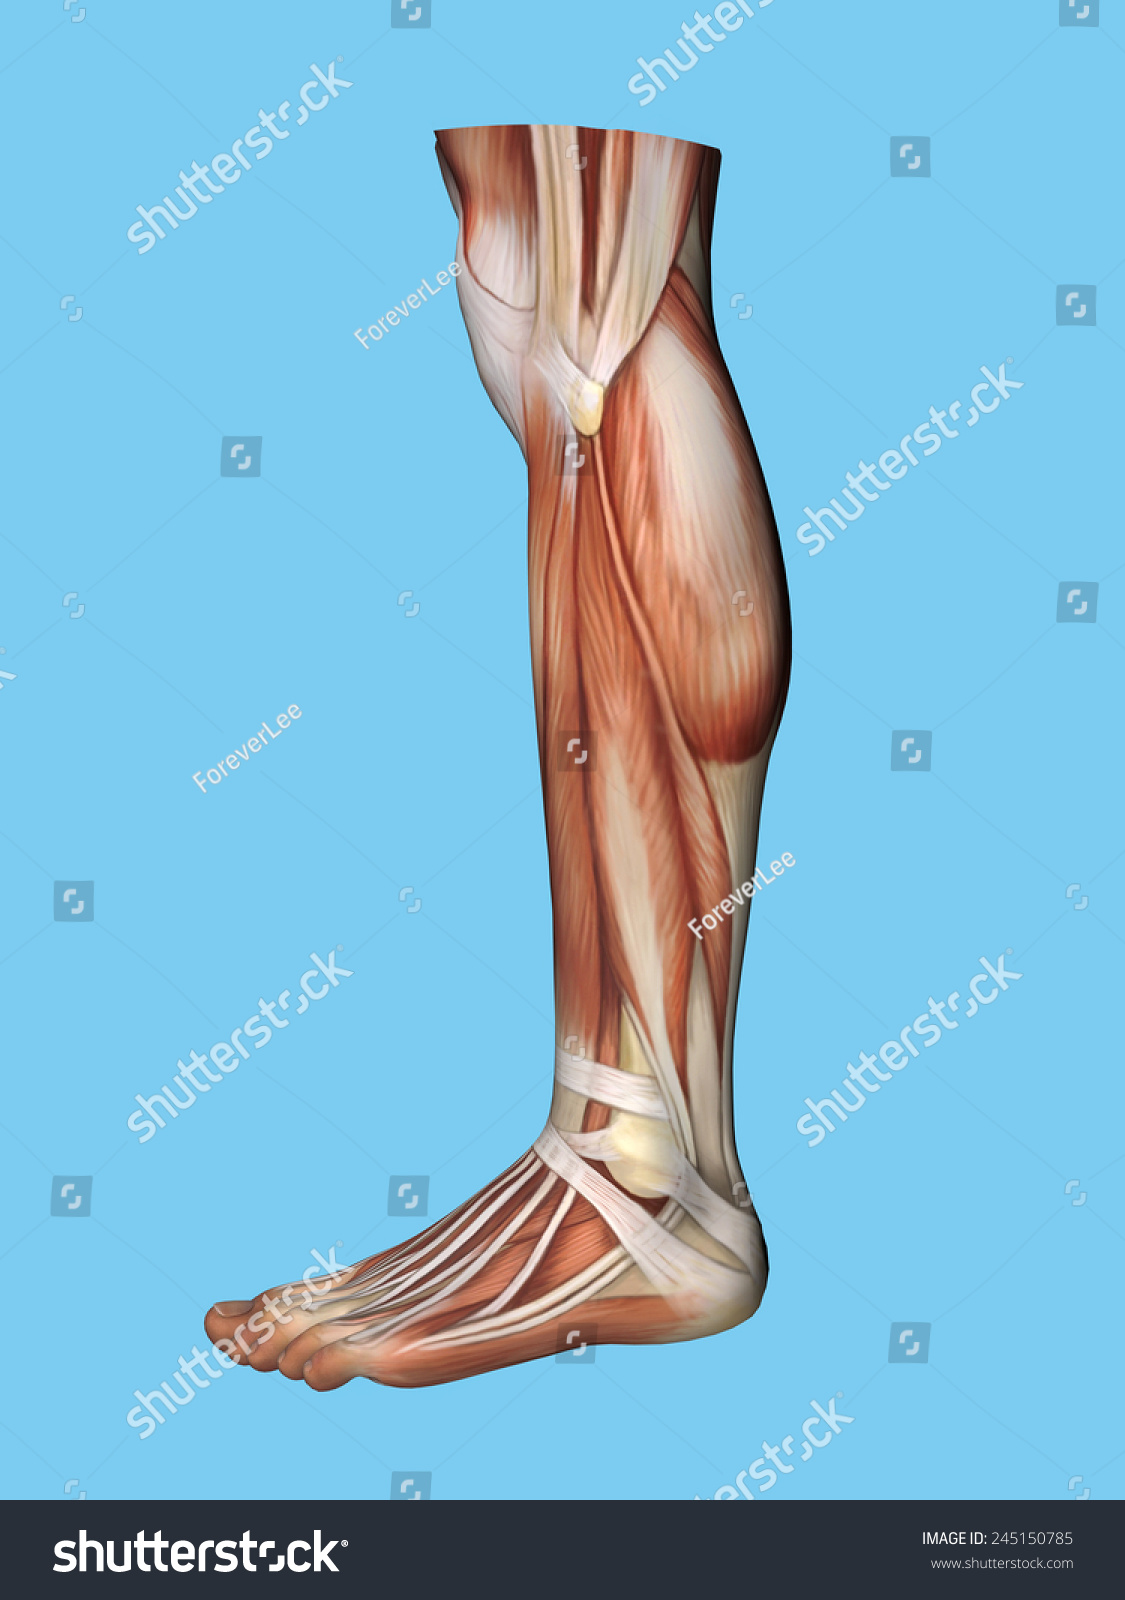 Anatomy Lateral Side View Leg Foot Stock Illustration 245150785